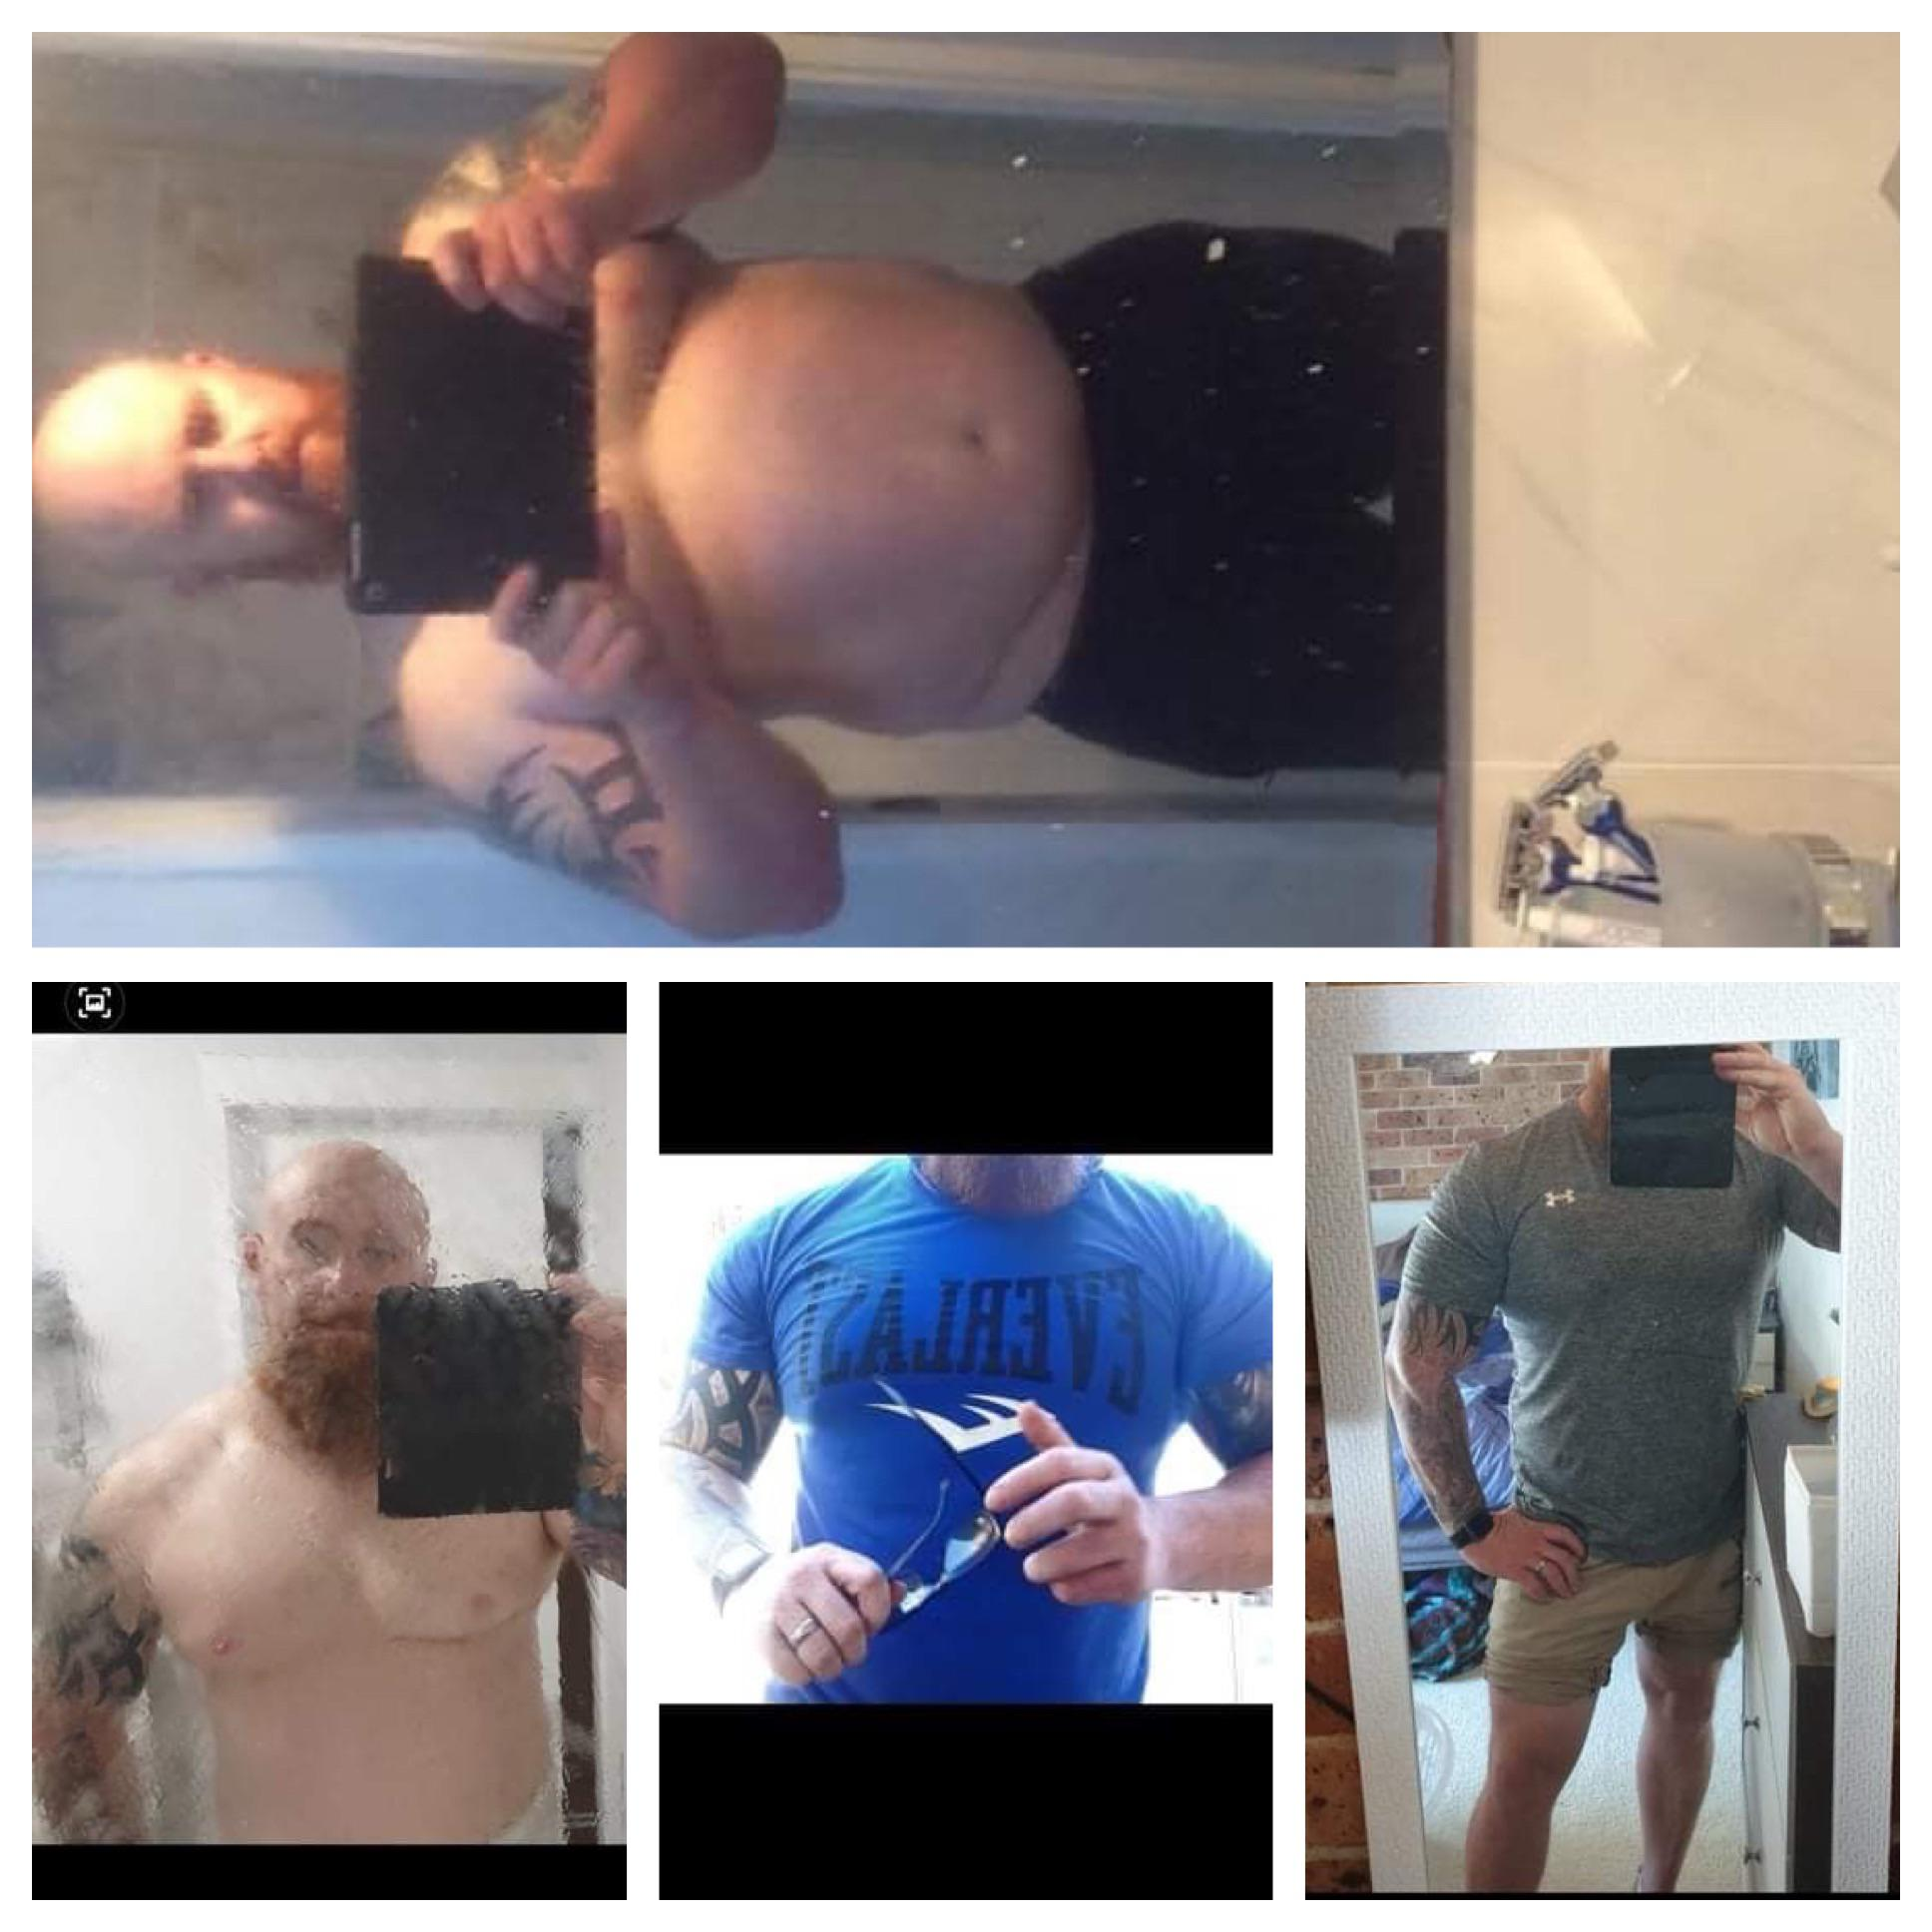 62 lbs Fat Loss Before and After 6 foot 2 Male 327 lbs to 265 lbs